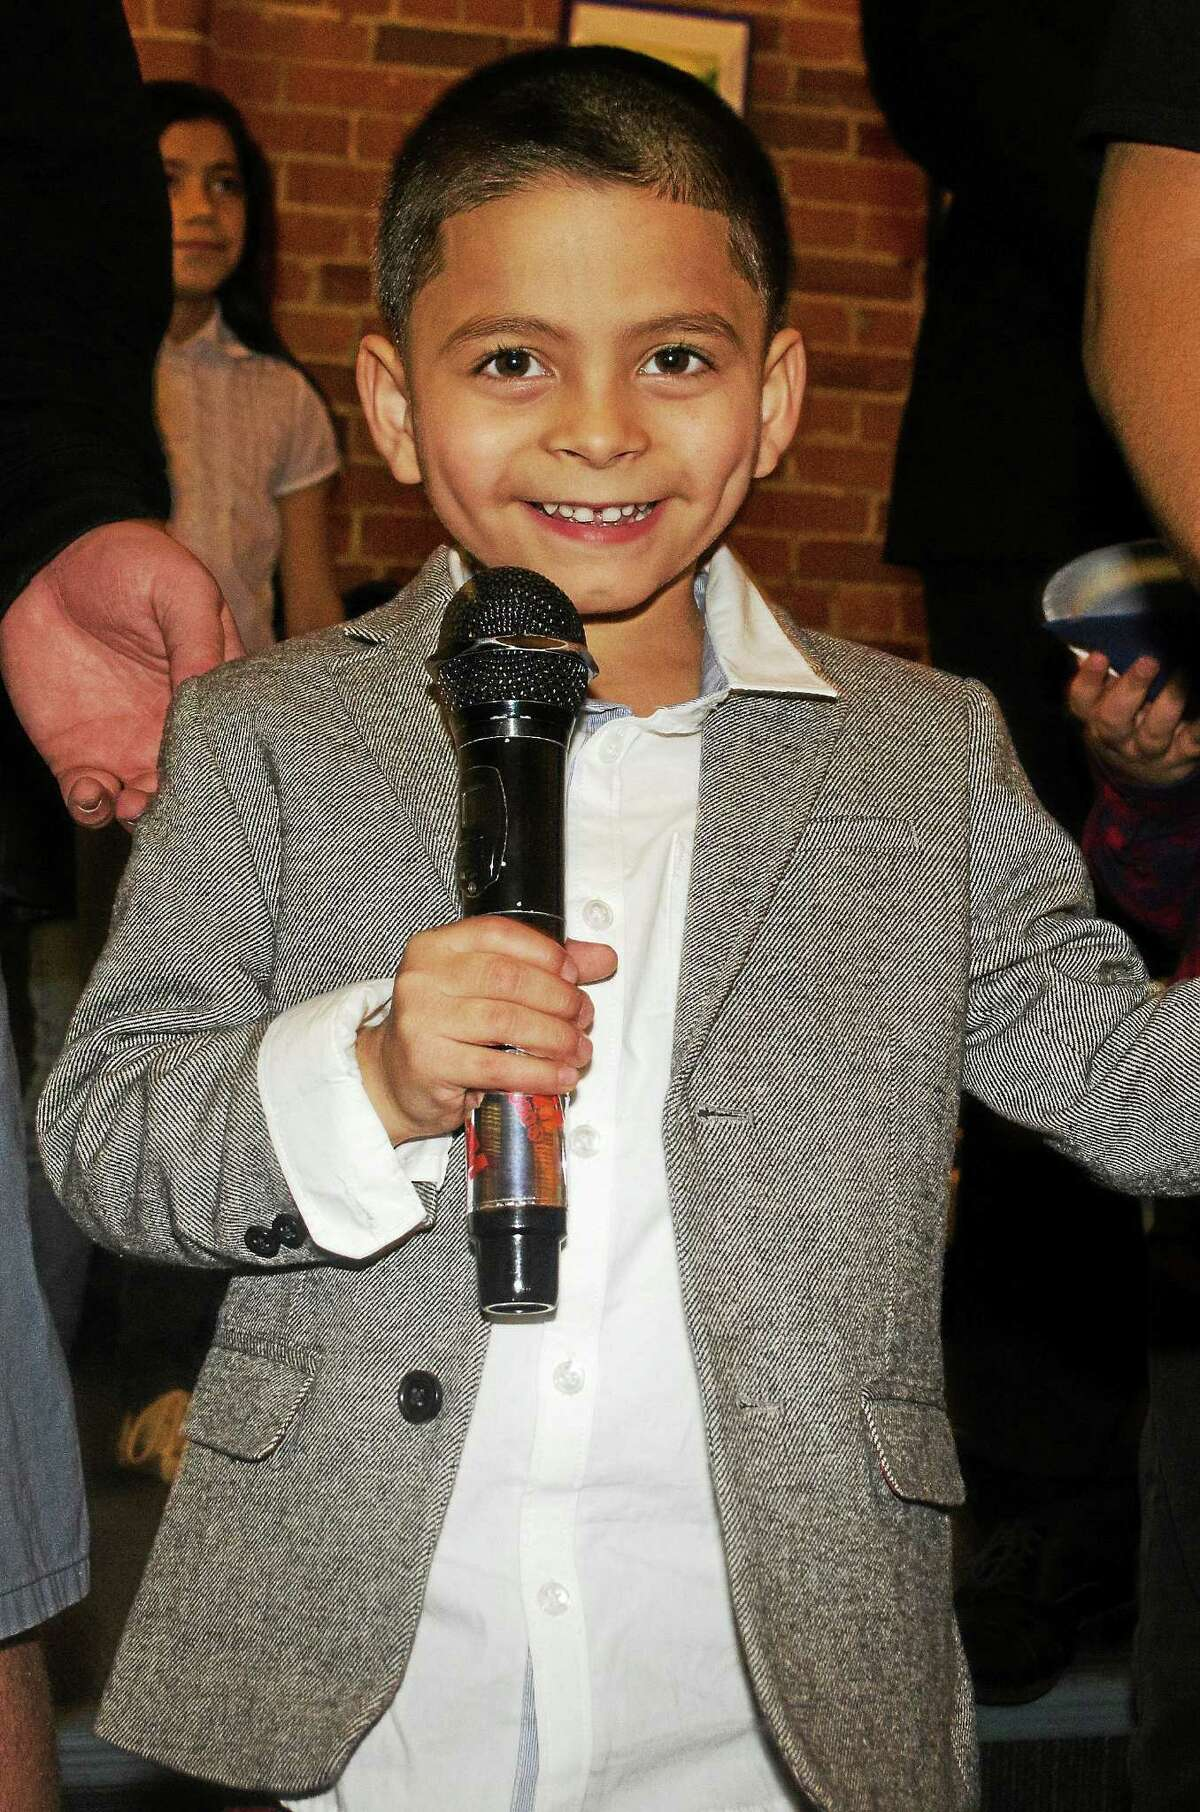 Adrian Laureano at the mic Sunday at Karaoke Heroes in New Haven.